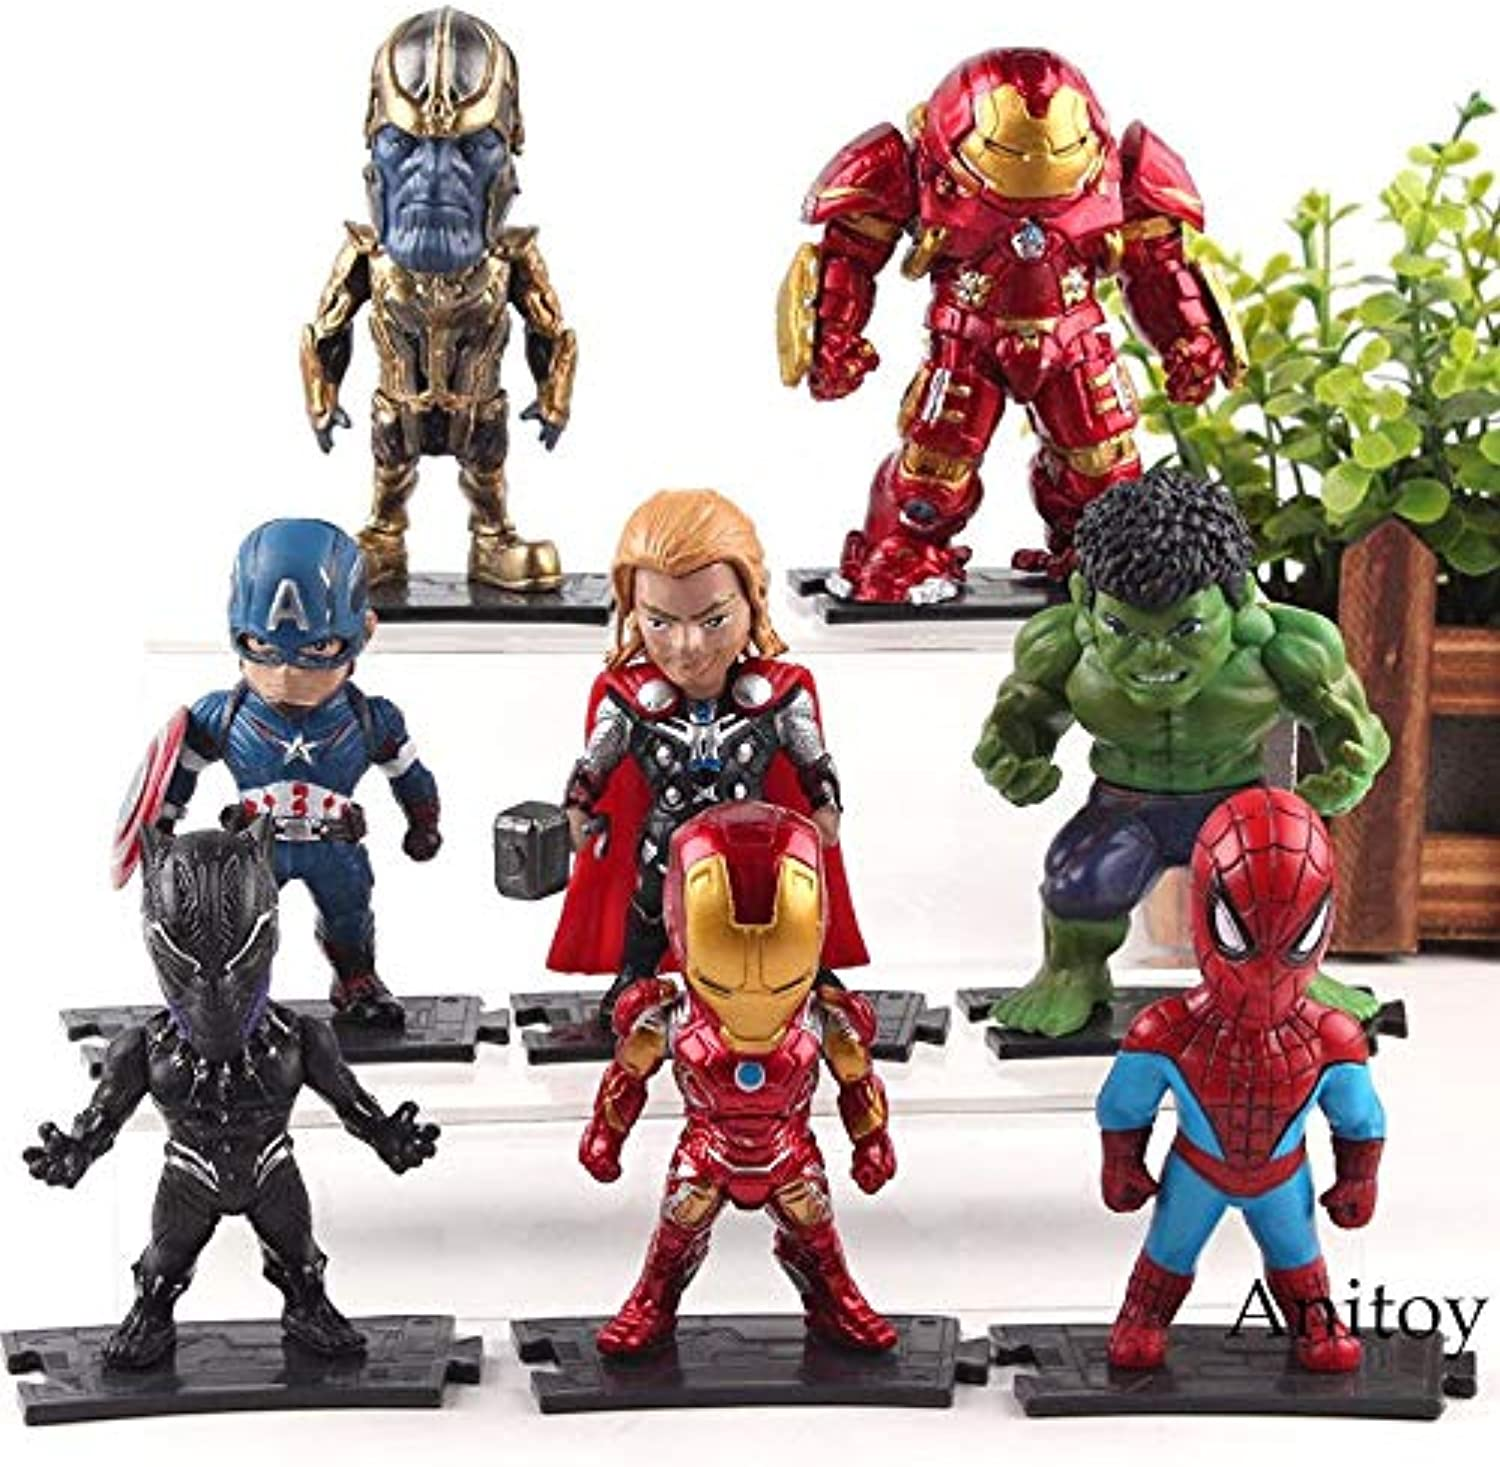 Marvel Avengers Infinity War Action Figures Thanos Hulk Hulkbuster Captain America Thor Iron Man Black Panther Spiderman Toys  Marvel Legends SpiderMan  Teen Titans Toys